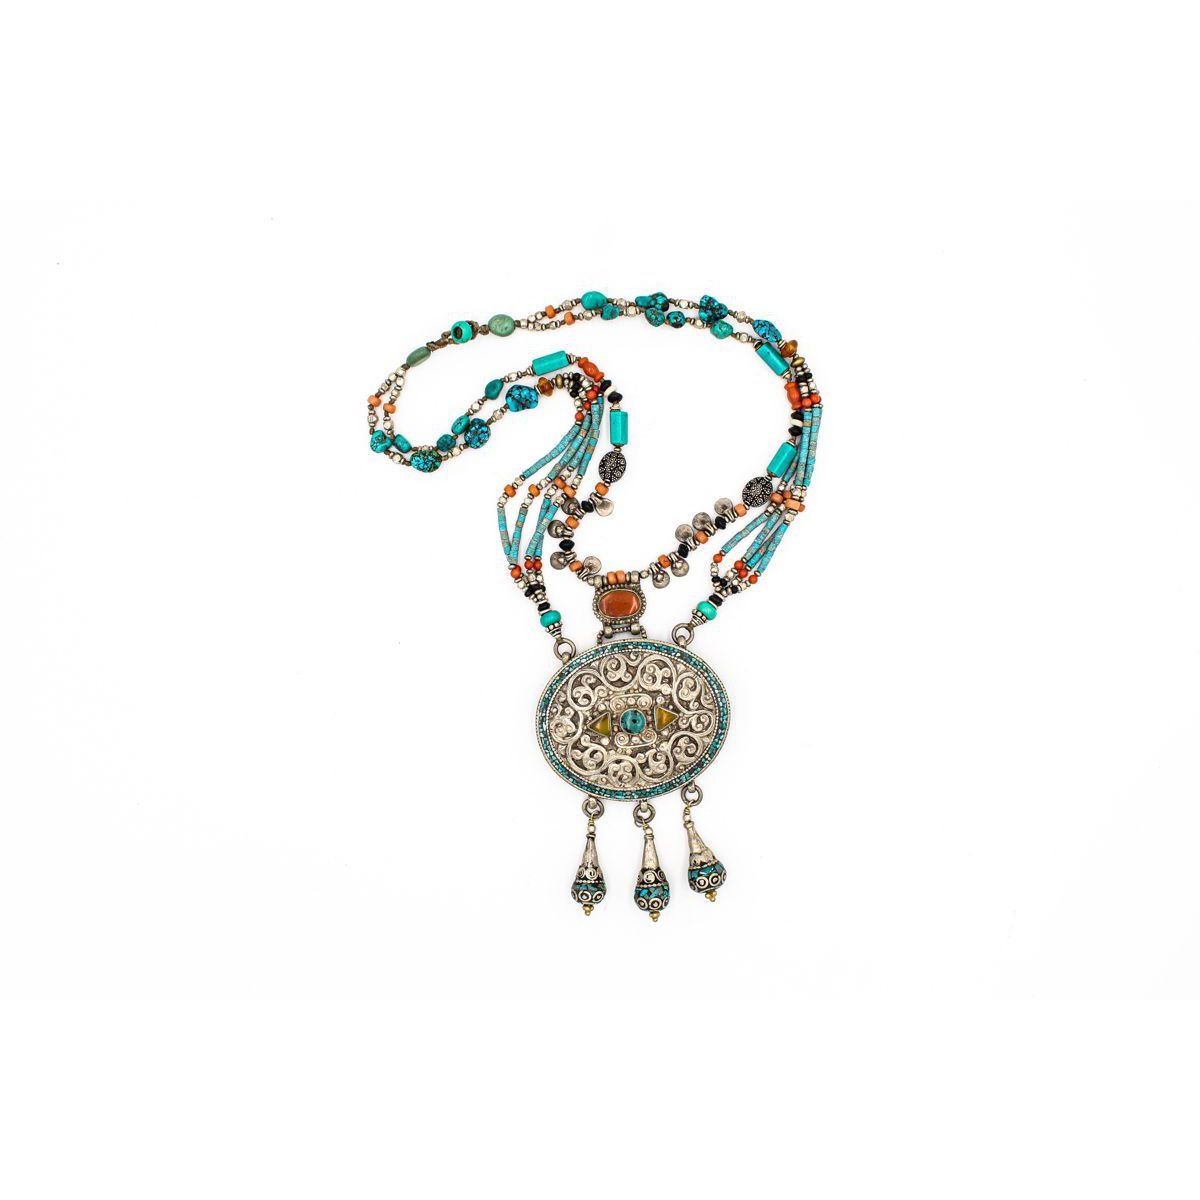 NECKLACE ETHNIC TURQUOISE AND CORAL Turquoise BRASS Gioielli